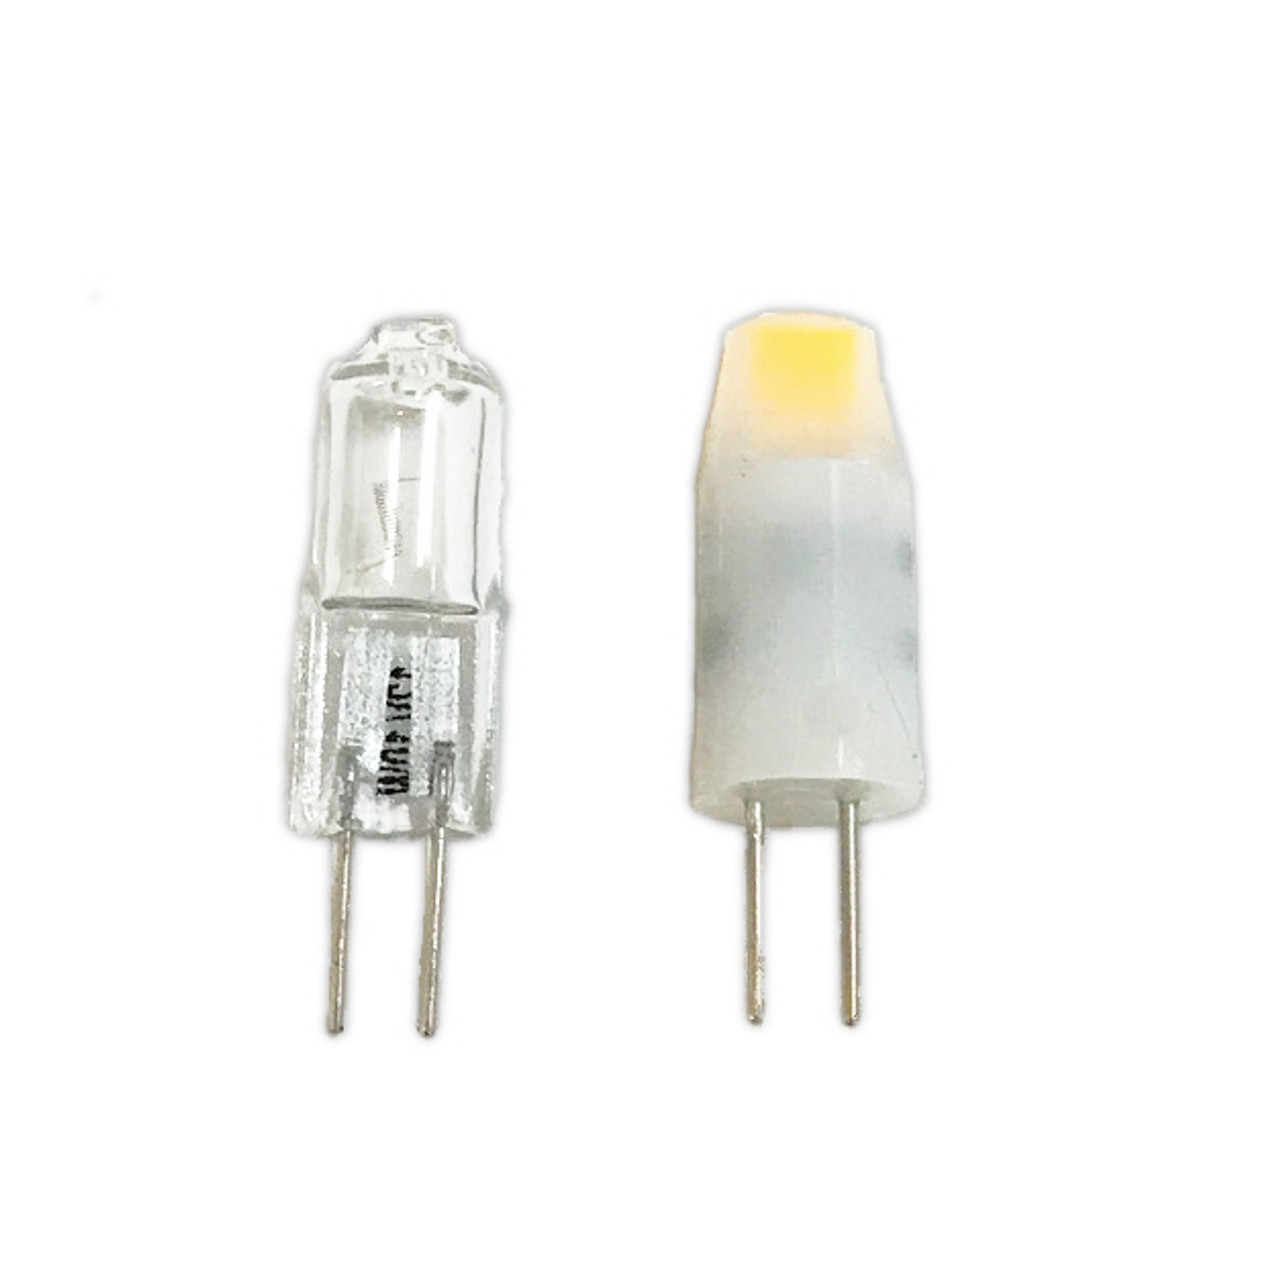 Micro waterproof G4 LED replacement bulb